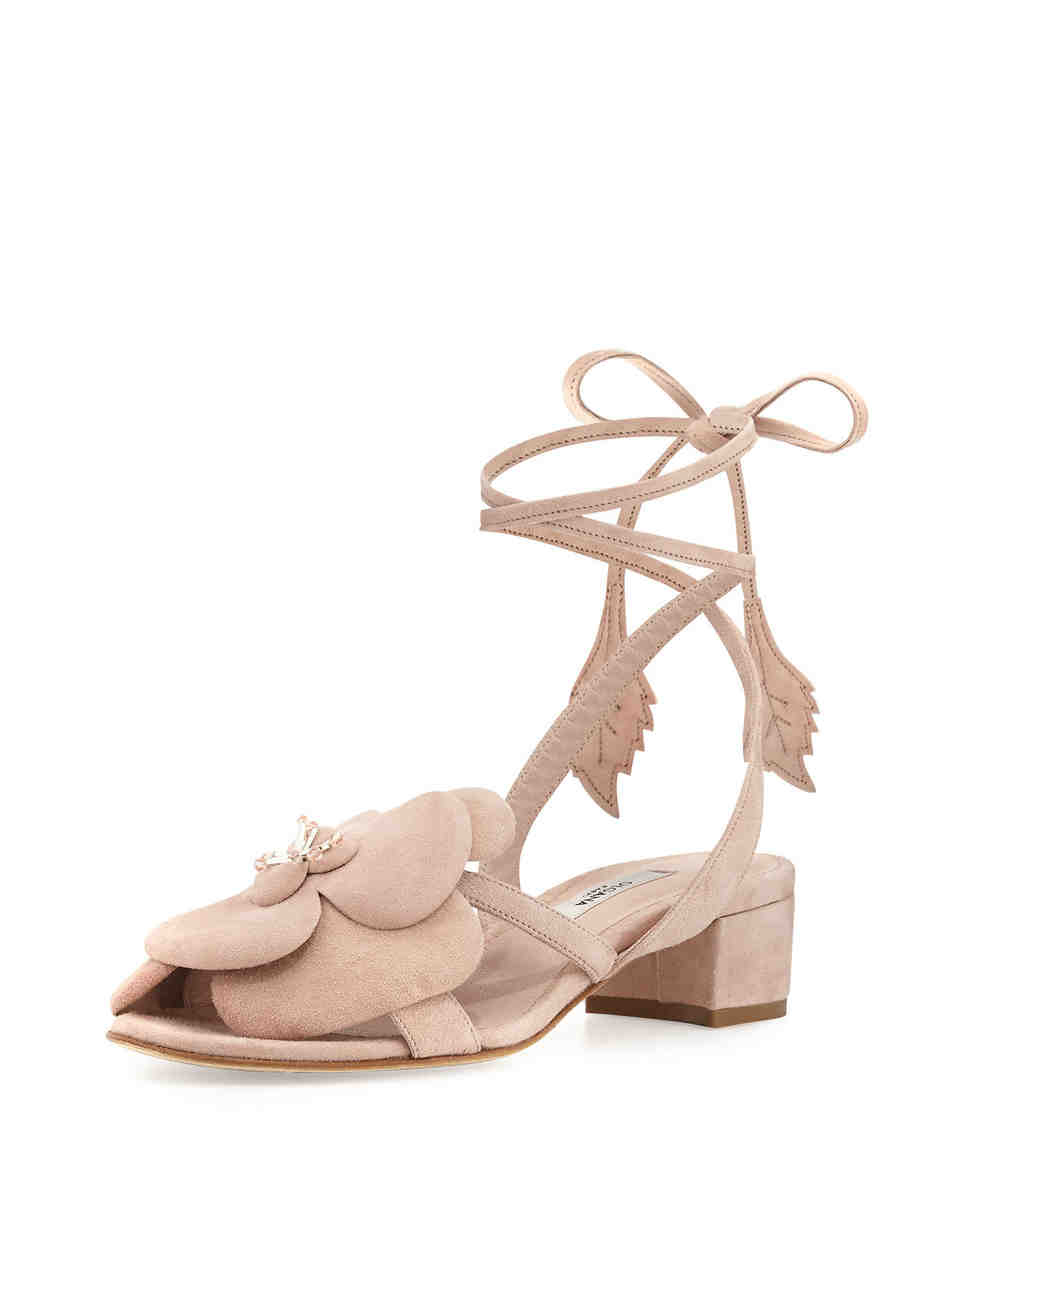 shoes that won't sink Olgana Paris floral lace-up sandal